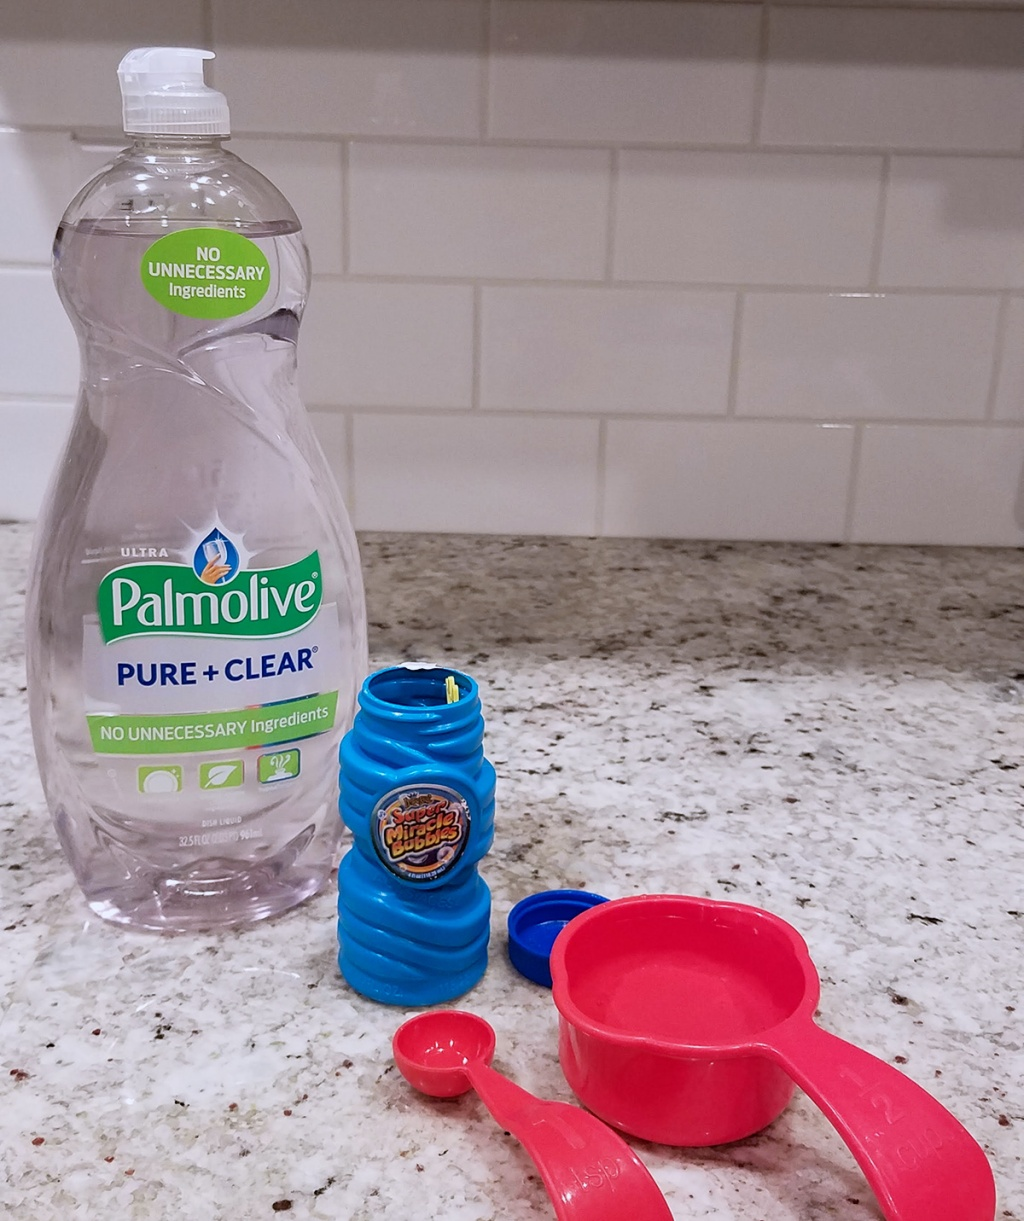 dish soap, water, measuring cups on counter